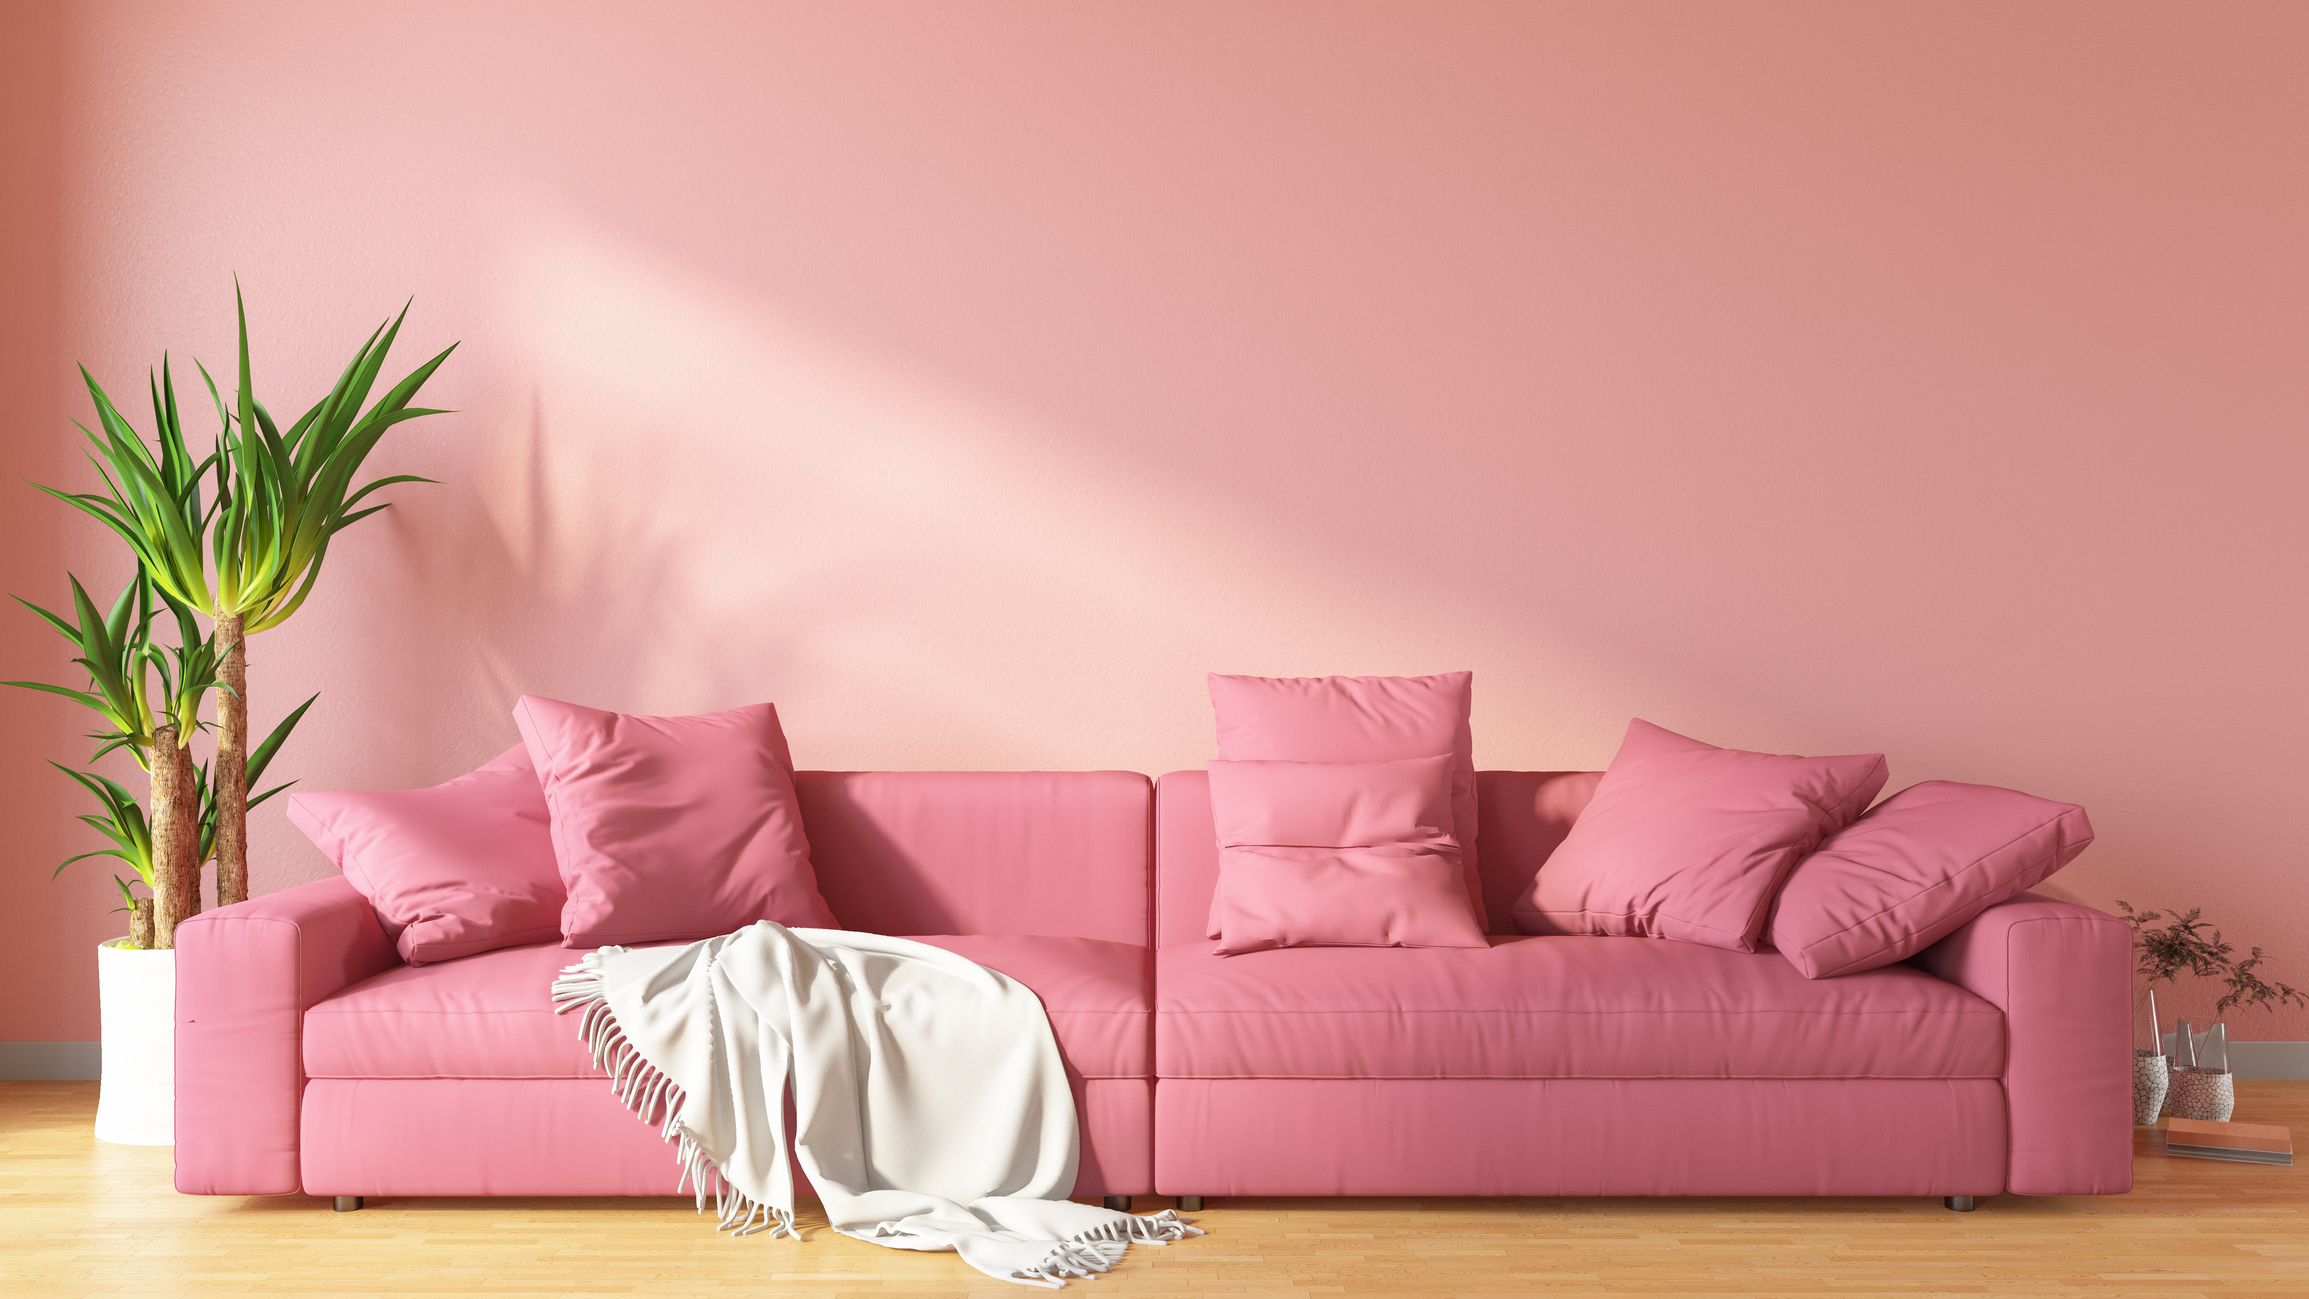 Pink Living Room with Sofa.